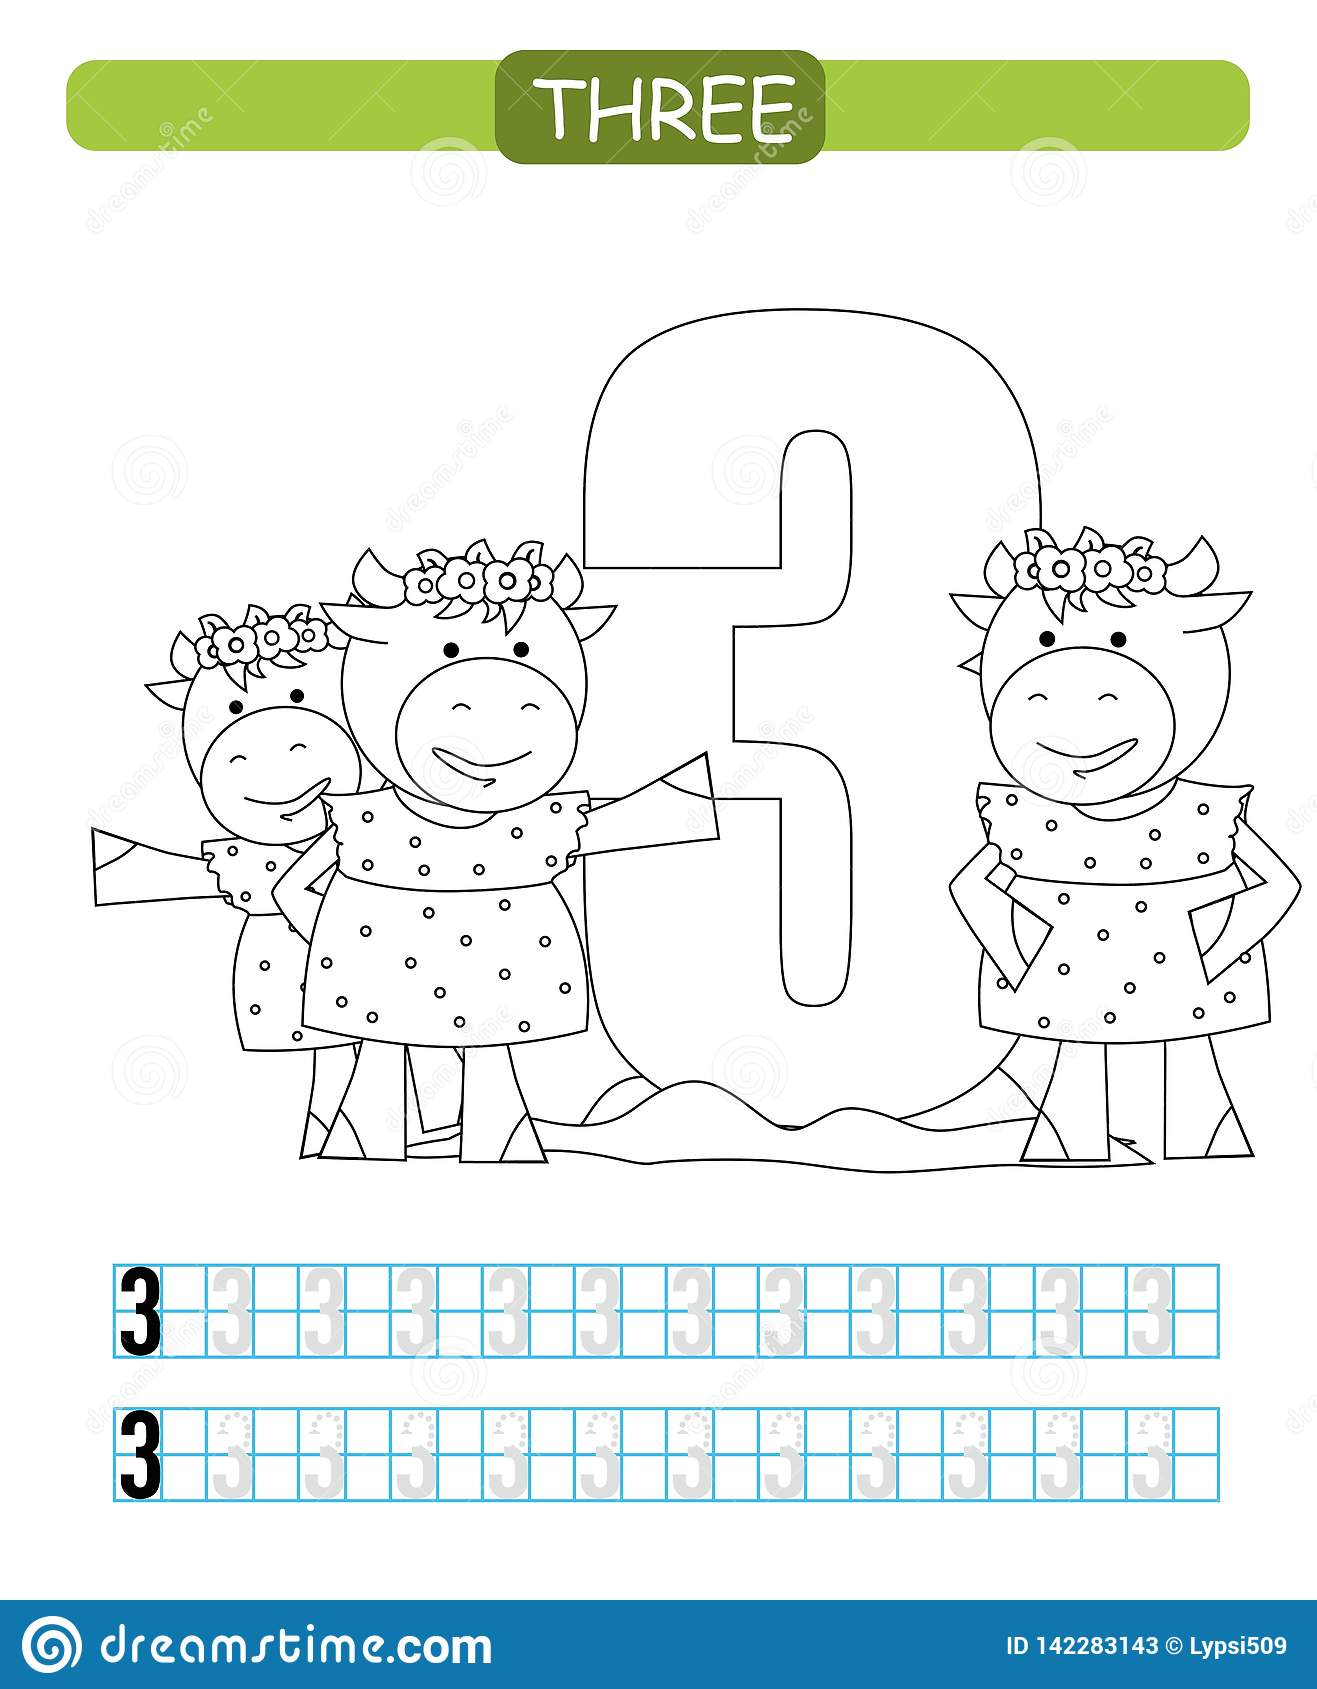 Three Learning Number 3 Coloring Printable Worksheet For